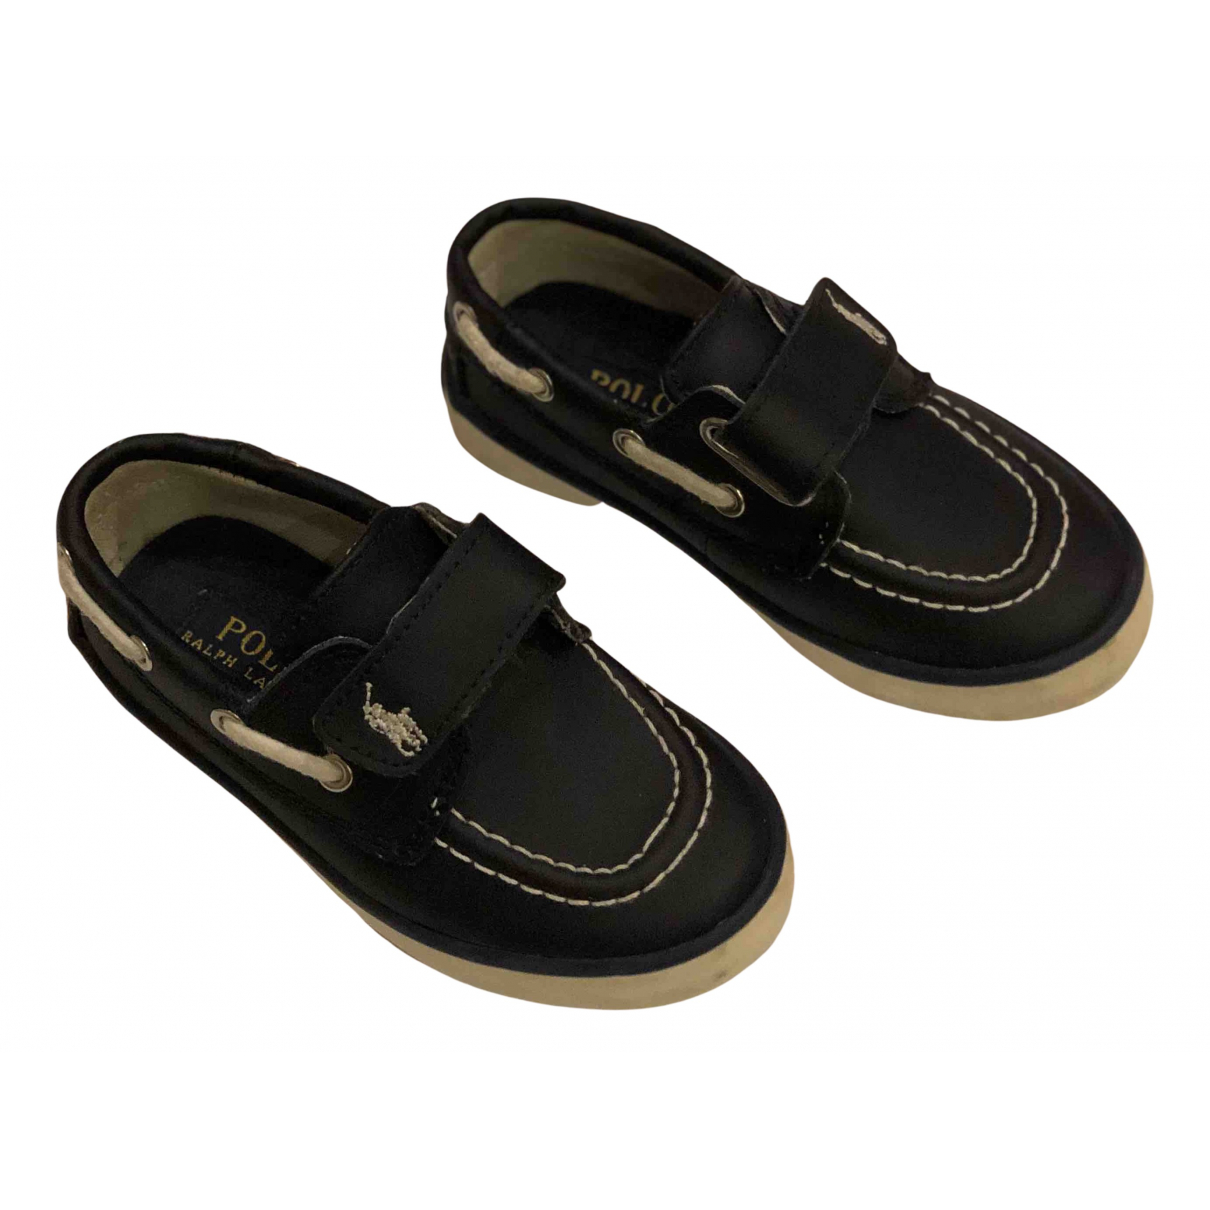 Polo Ralph Lauren N Navy Leather Flats for Kids 6 UK